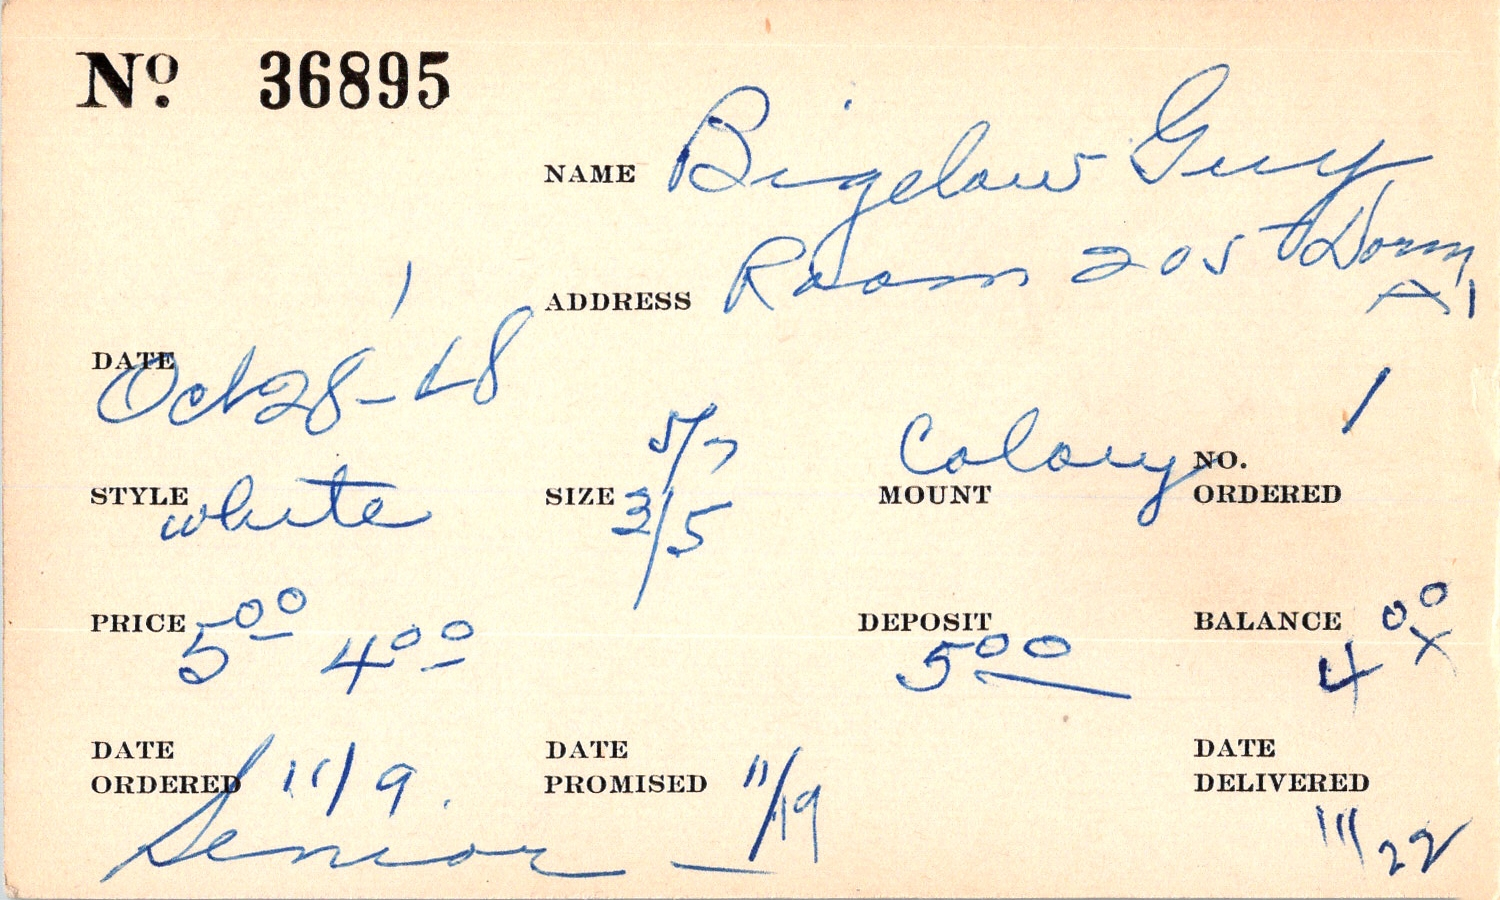 Index card for Guy Bigelow